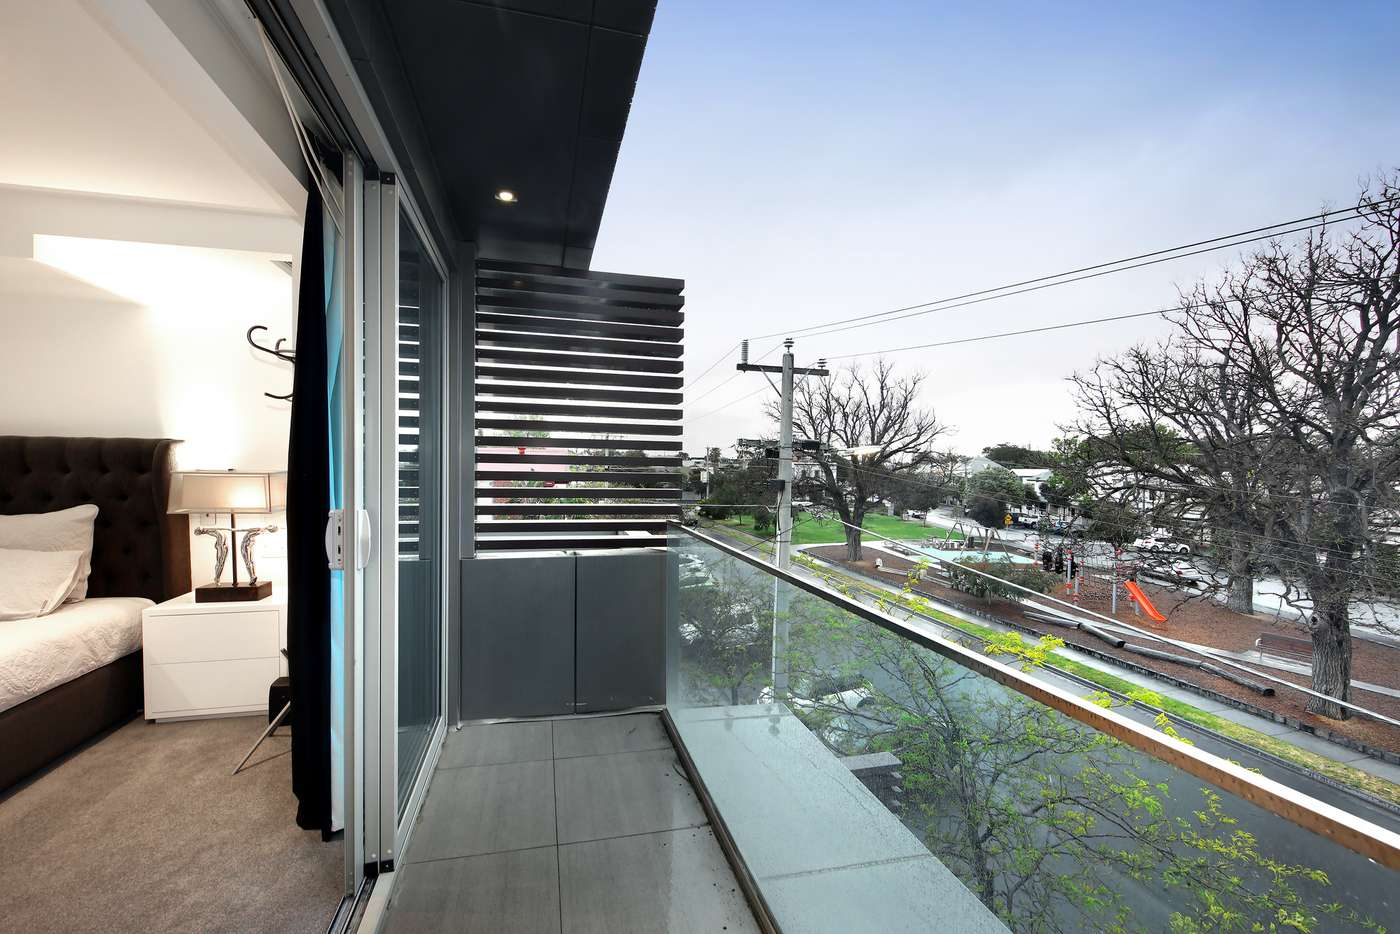 Sixth view of Homely house listing, 246 Stokes Street, Port Melbourne VIC 3207